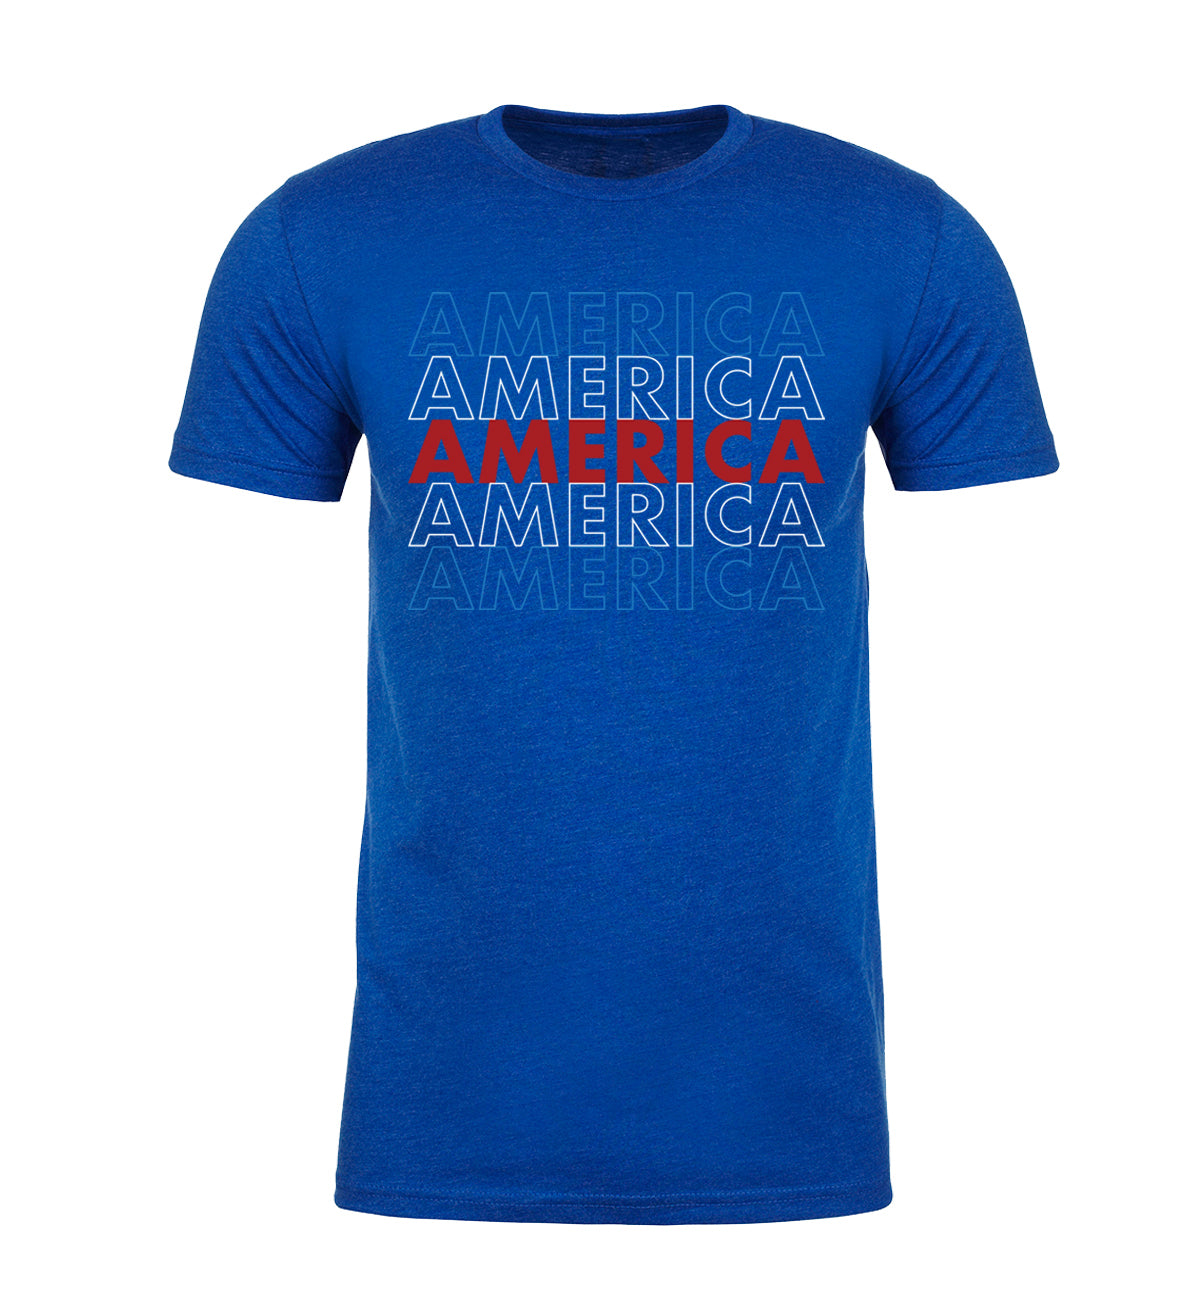 Shirt - America Red White And Blue Men's T-shirt, 4th Of July T-shirts For Men